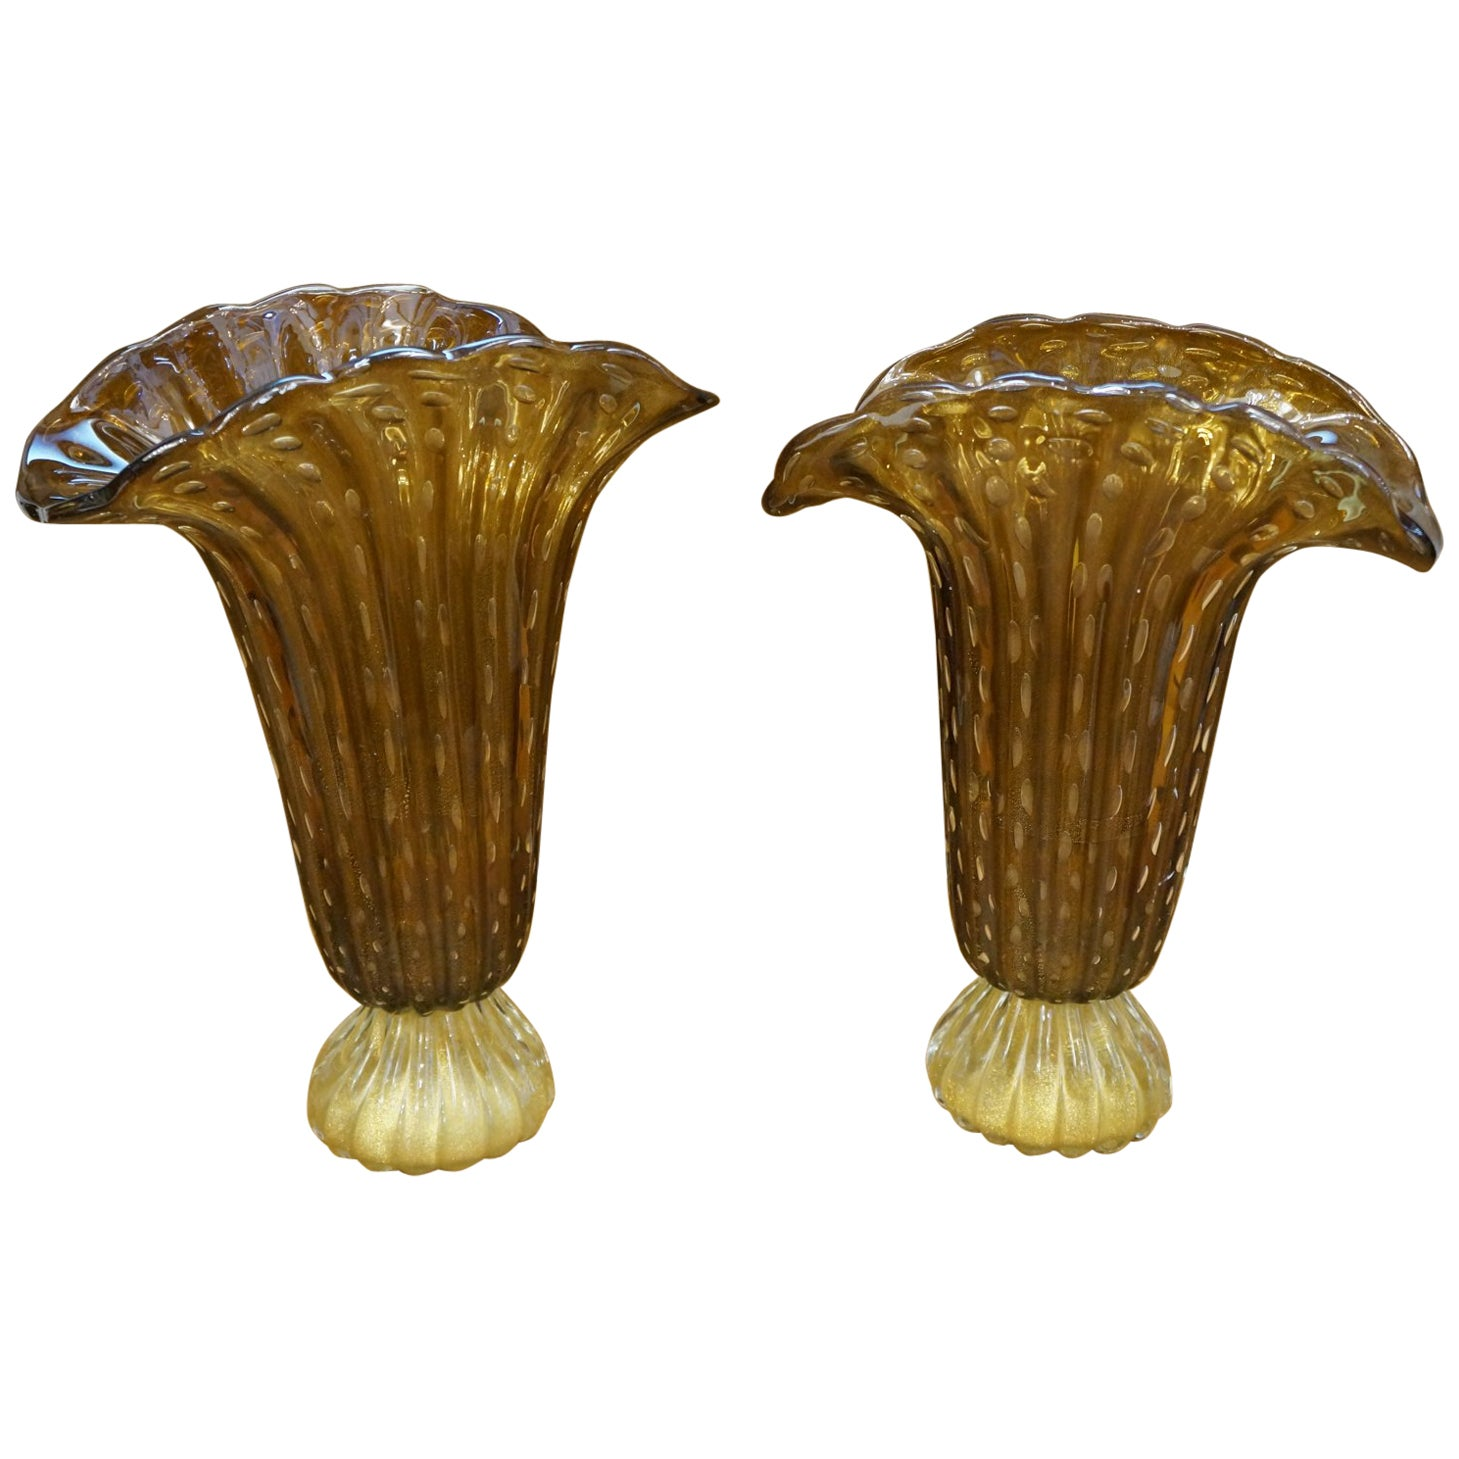 Toso Mid-Century Modern Tobacco Gold Pair of Murano Glass Vases Signed, 1987